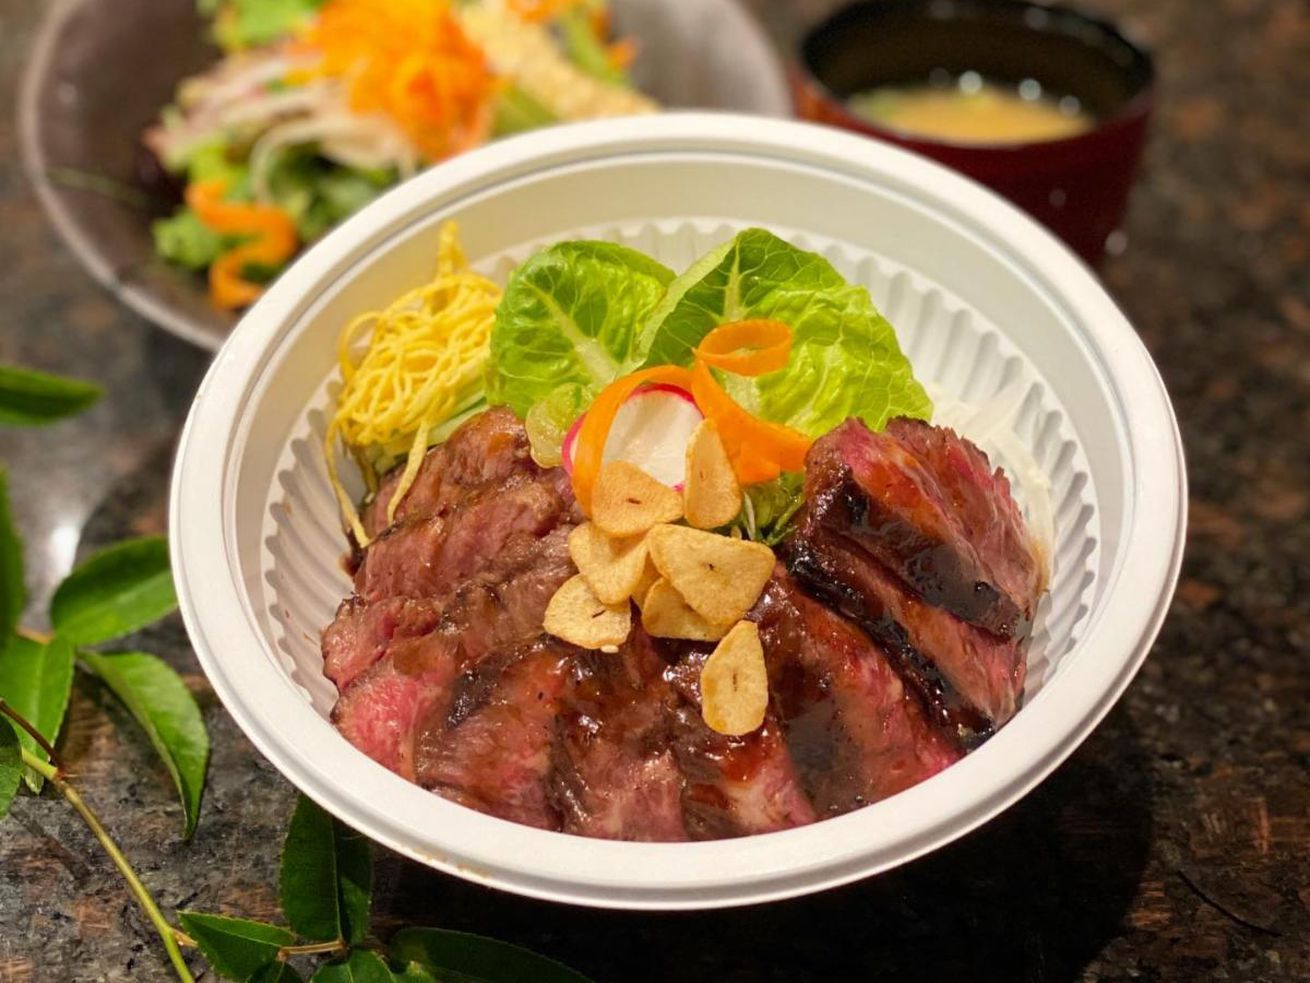 How To Eat At Eater 38 Restaurants That Remain Open In Las Vegas In 2020 Pork Salad Spicy Pork Takeout Food